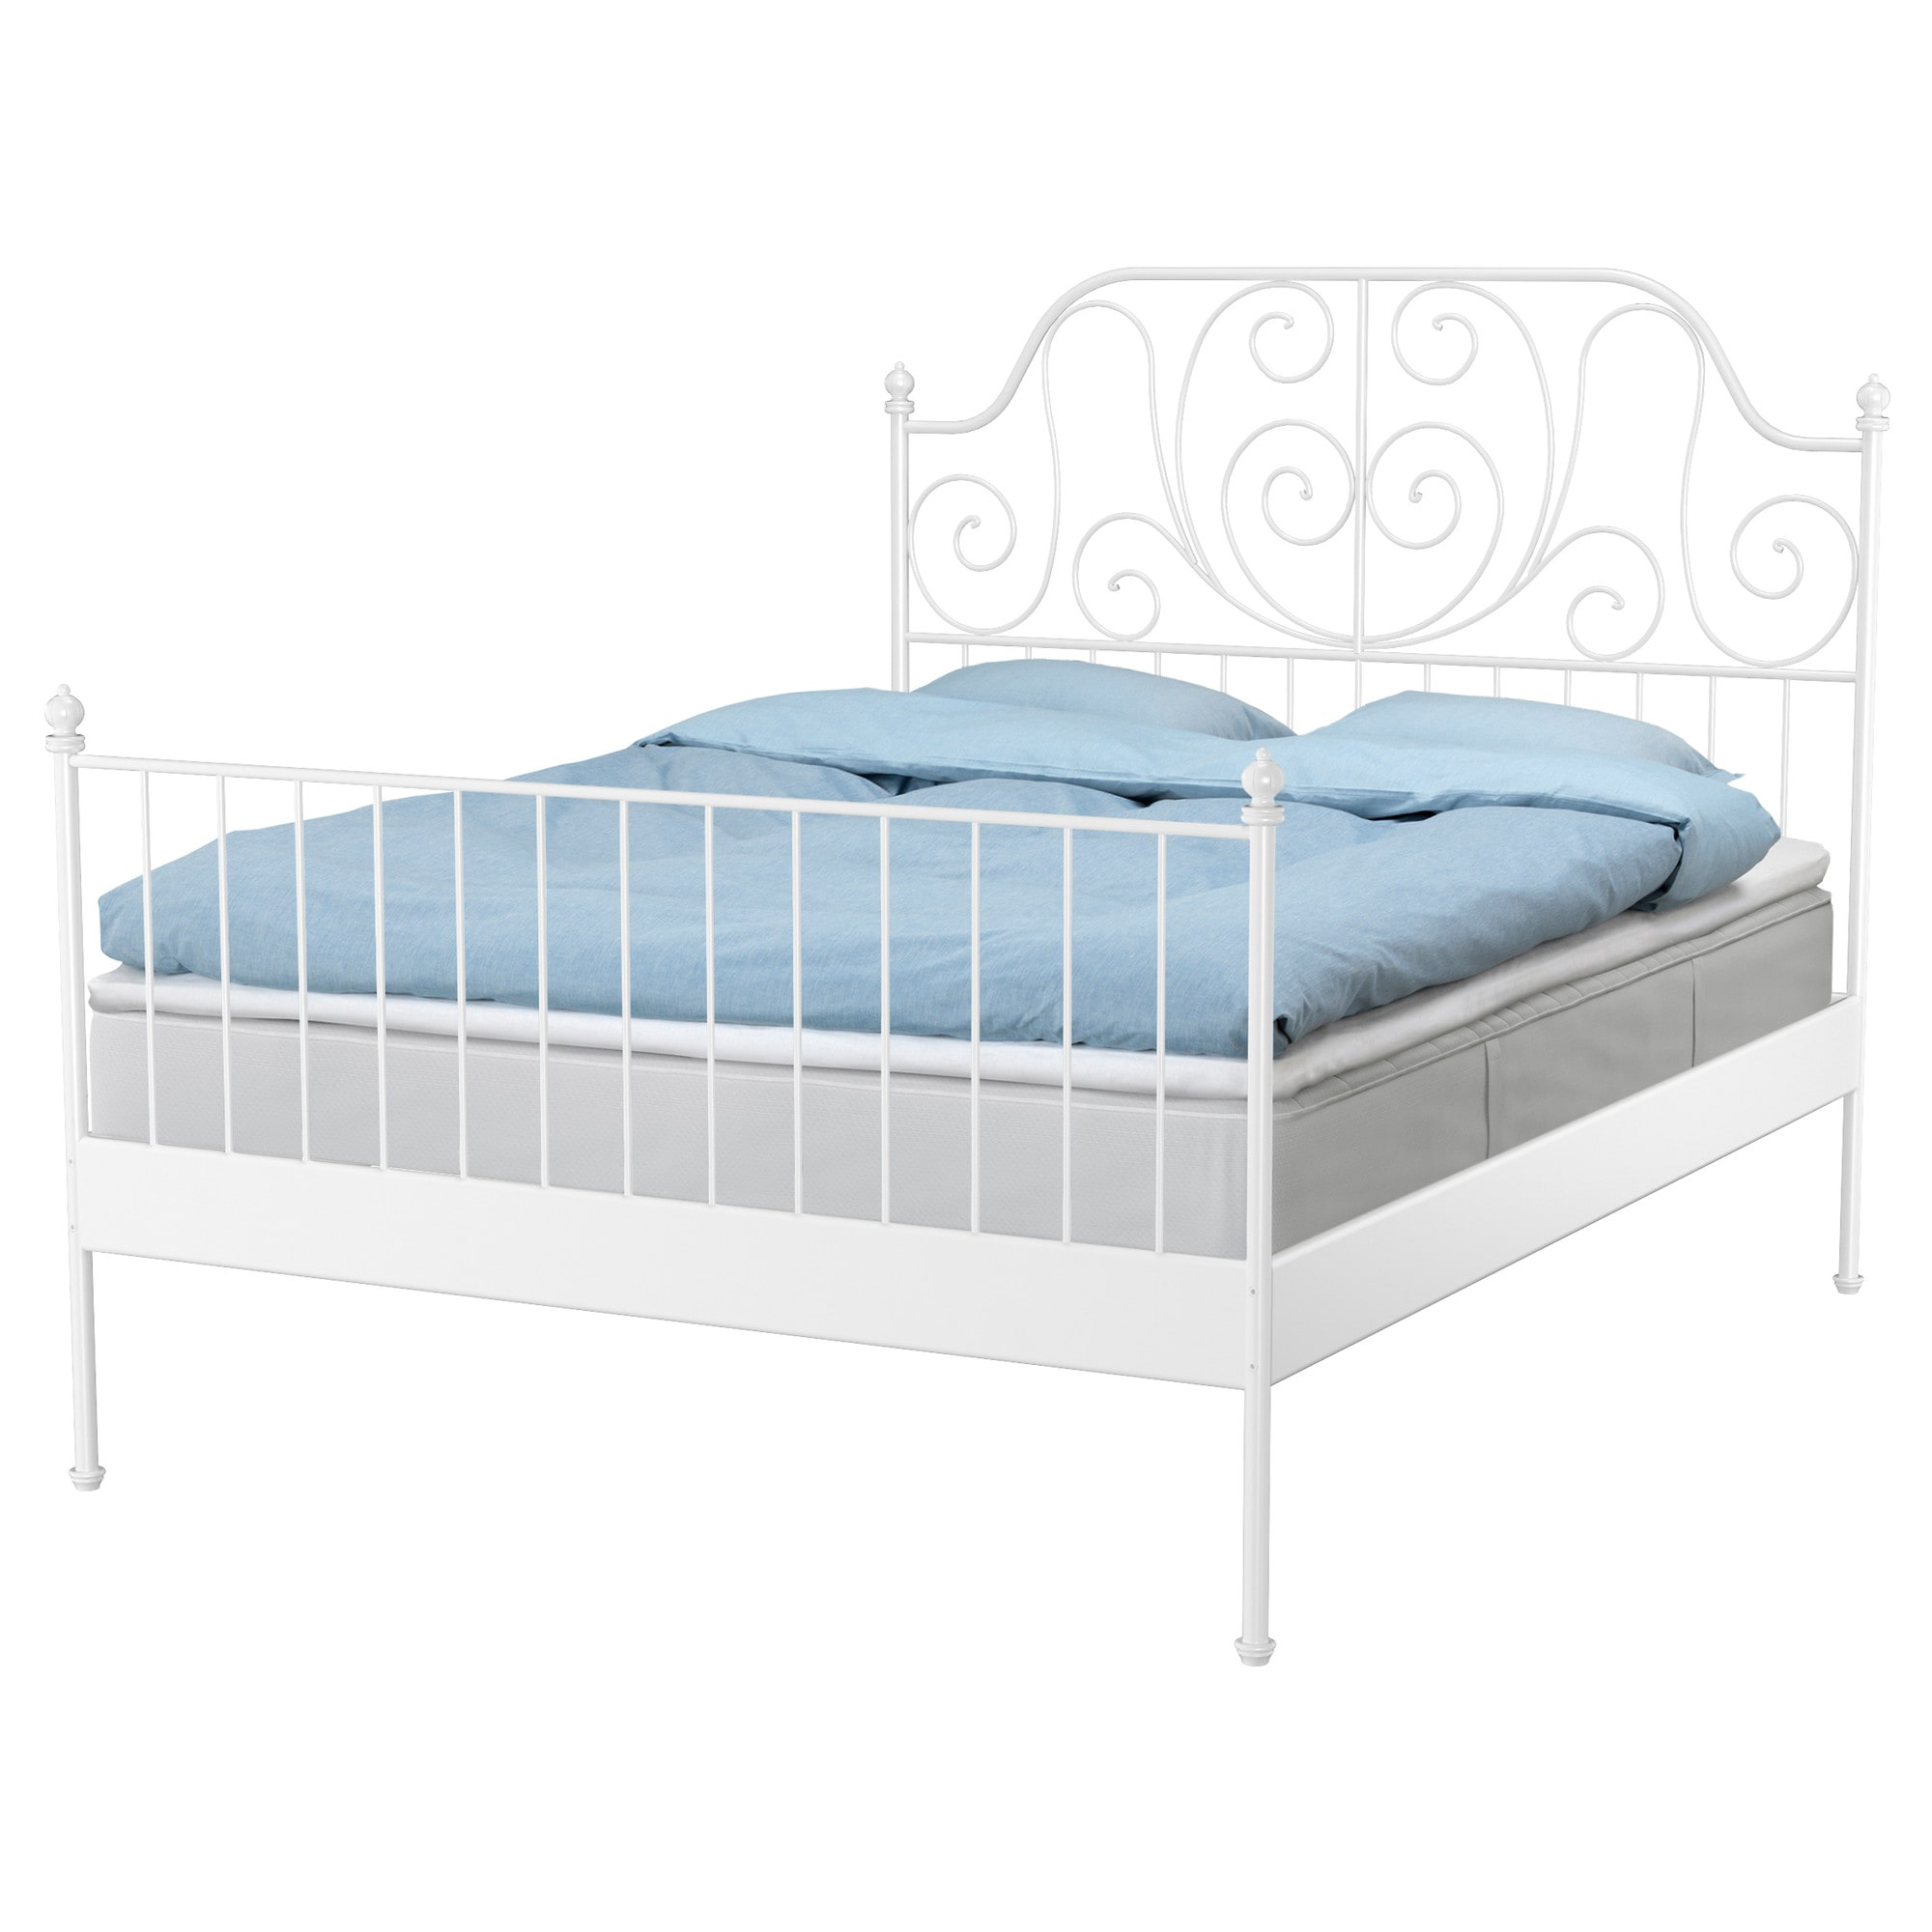 inter ikea systems bv 2011 2017 privacy policy - Ikea Leirvik Bed Frame